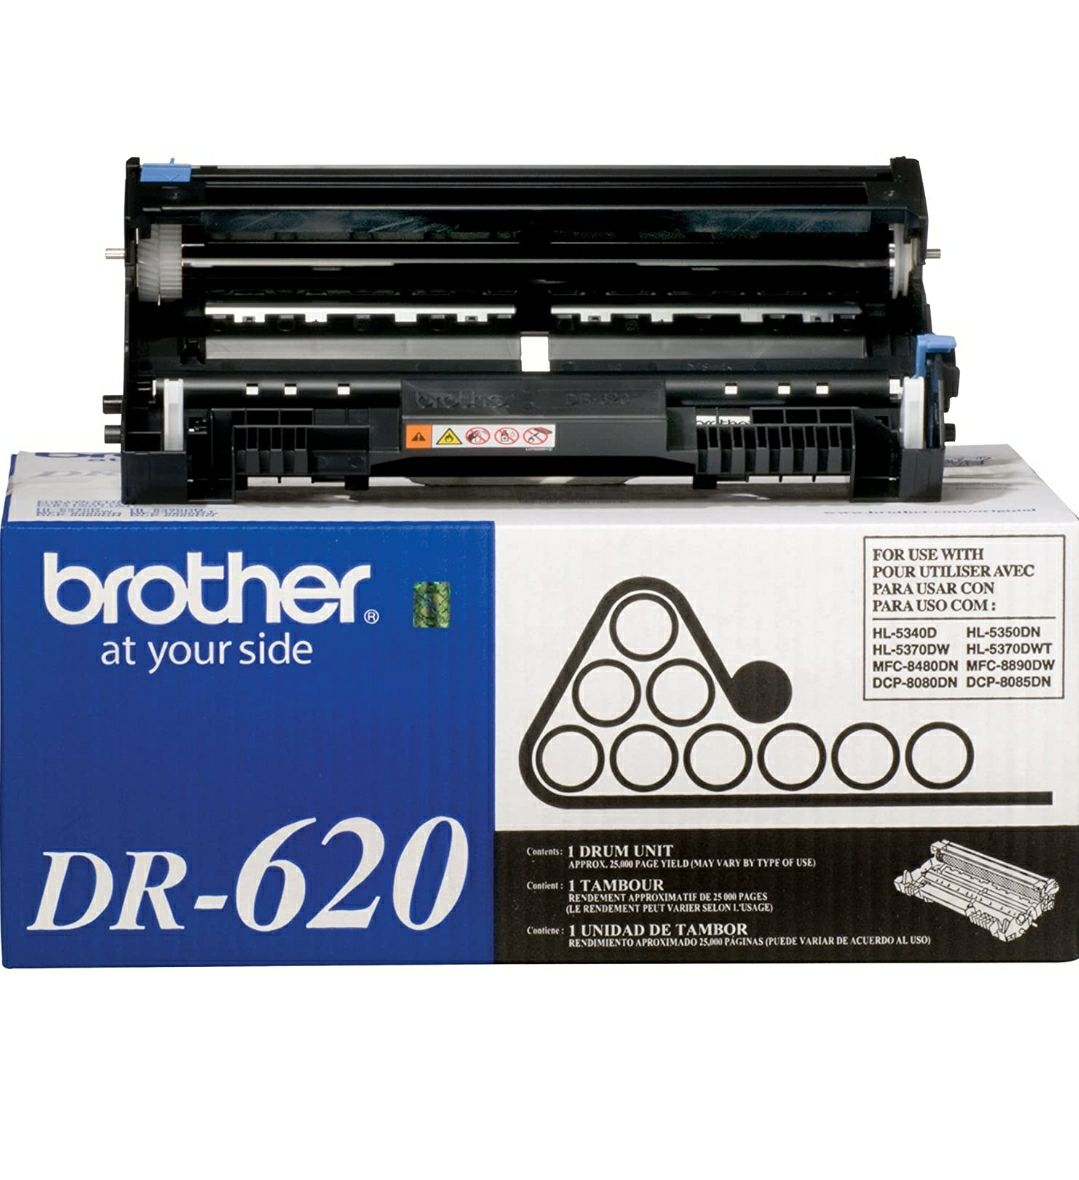 Brother Drum Unit DR-620 with 650 toner